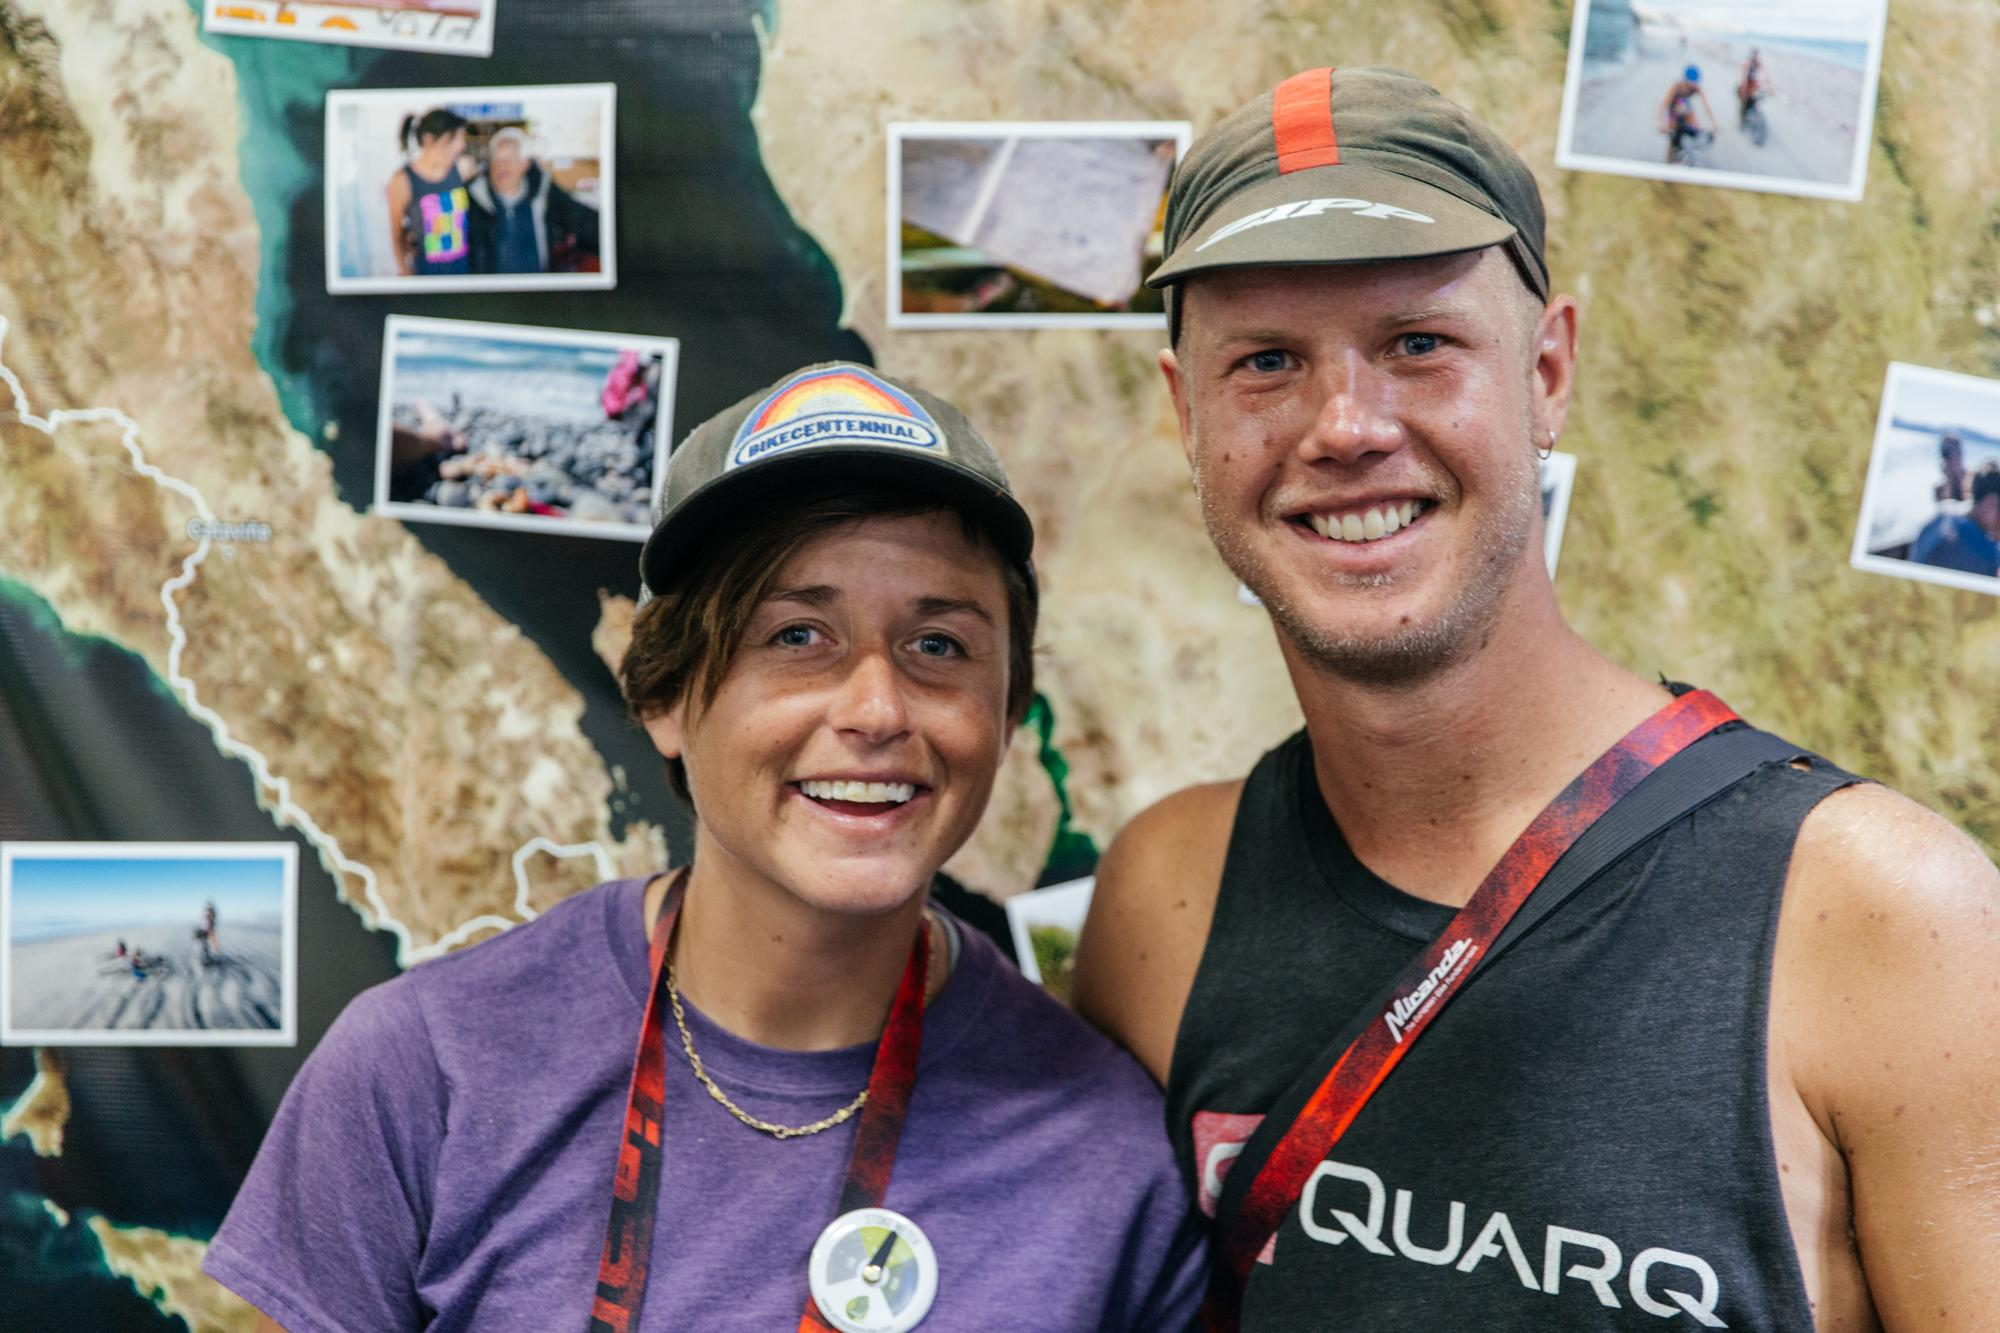 Lael and Nicholas in the Revelate Booth and their Baja Divide route.